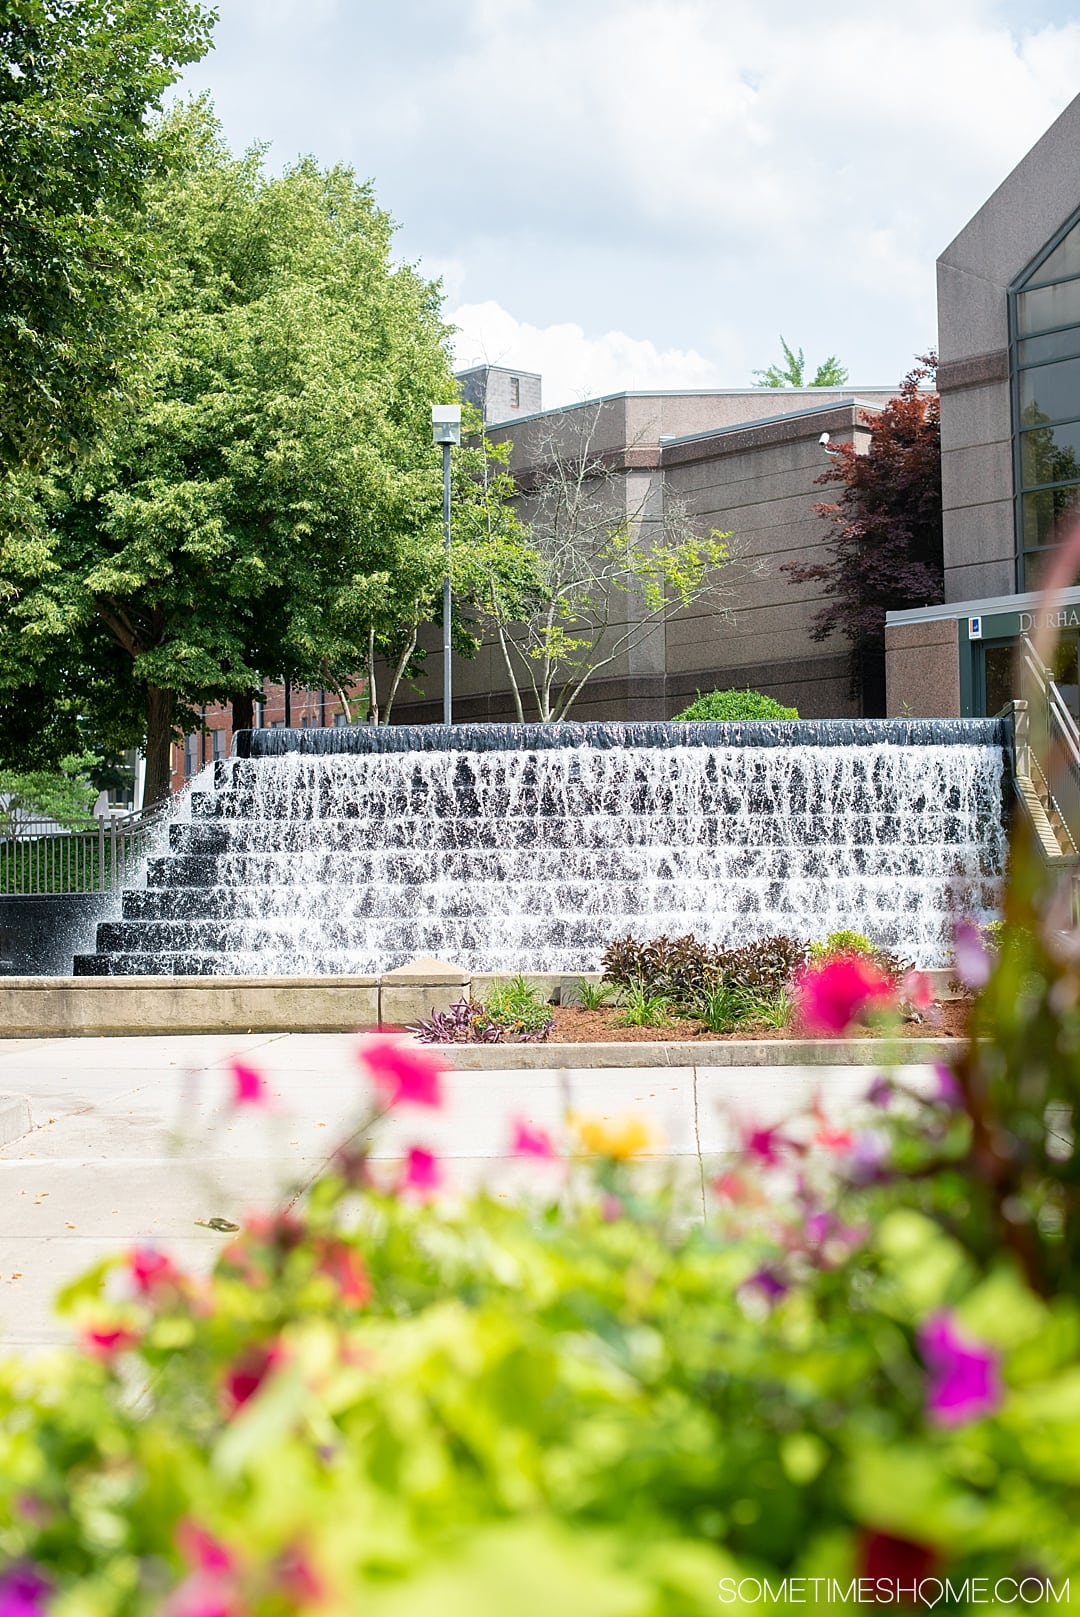 The 12 Best Photography Spots in Durham, North Carolina include art, greenery, a very special part of Duke campus, shopping areas downtown and more. Click through to read the specifics on Sometimes Home! #DurhamNC #NorthCarolina #DurhamNorthCarolina #Duke #VisitNC #photographyspots #photography